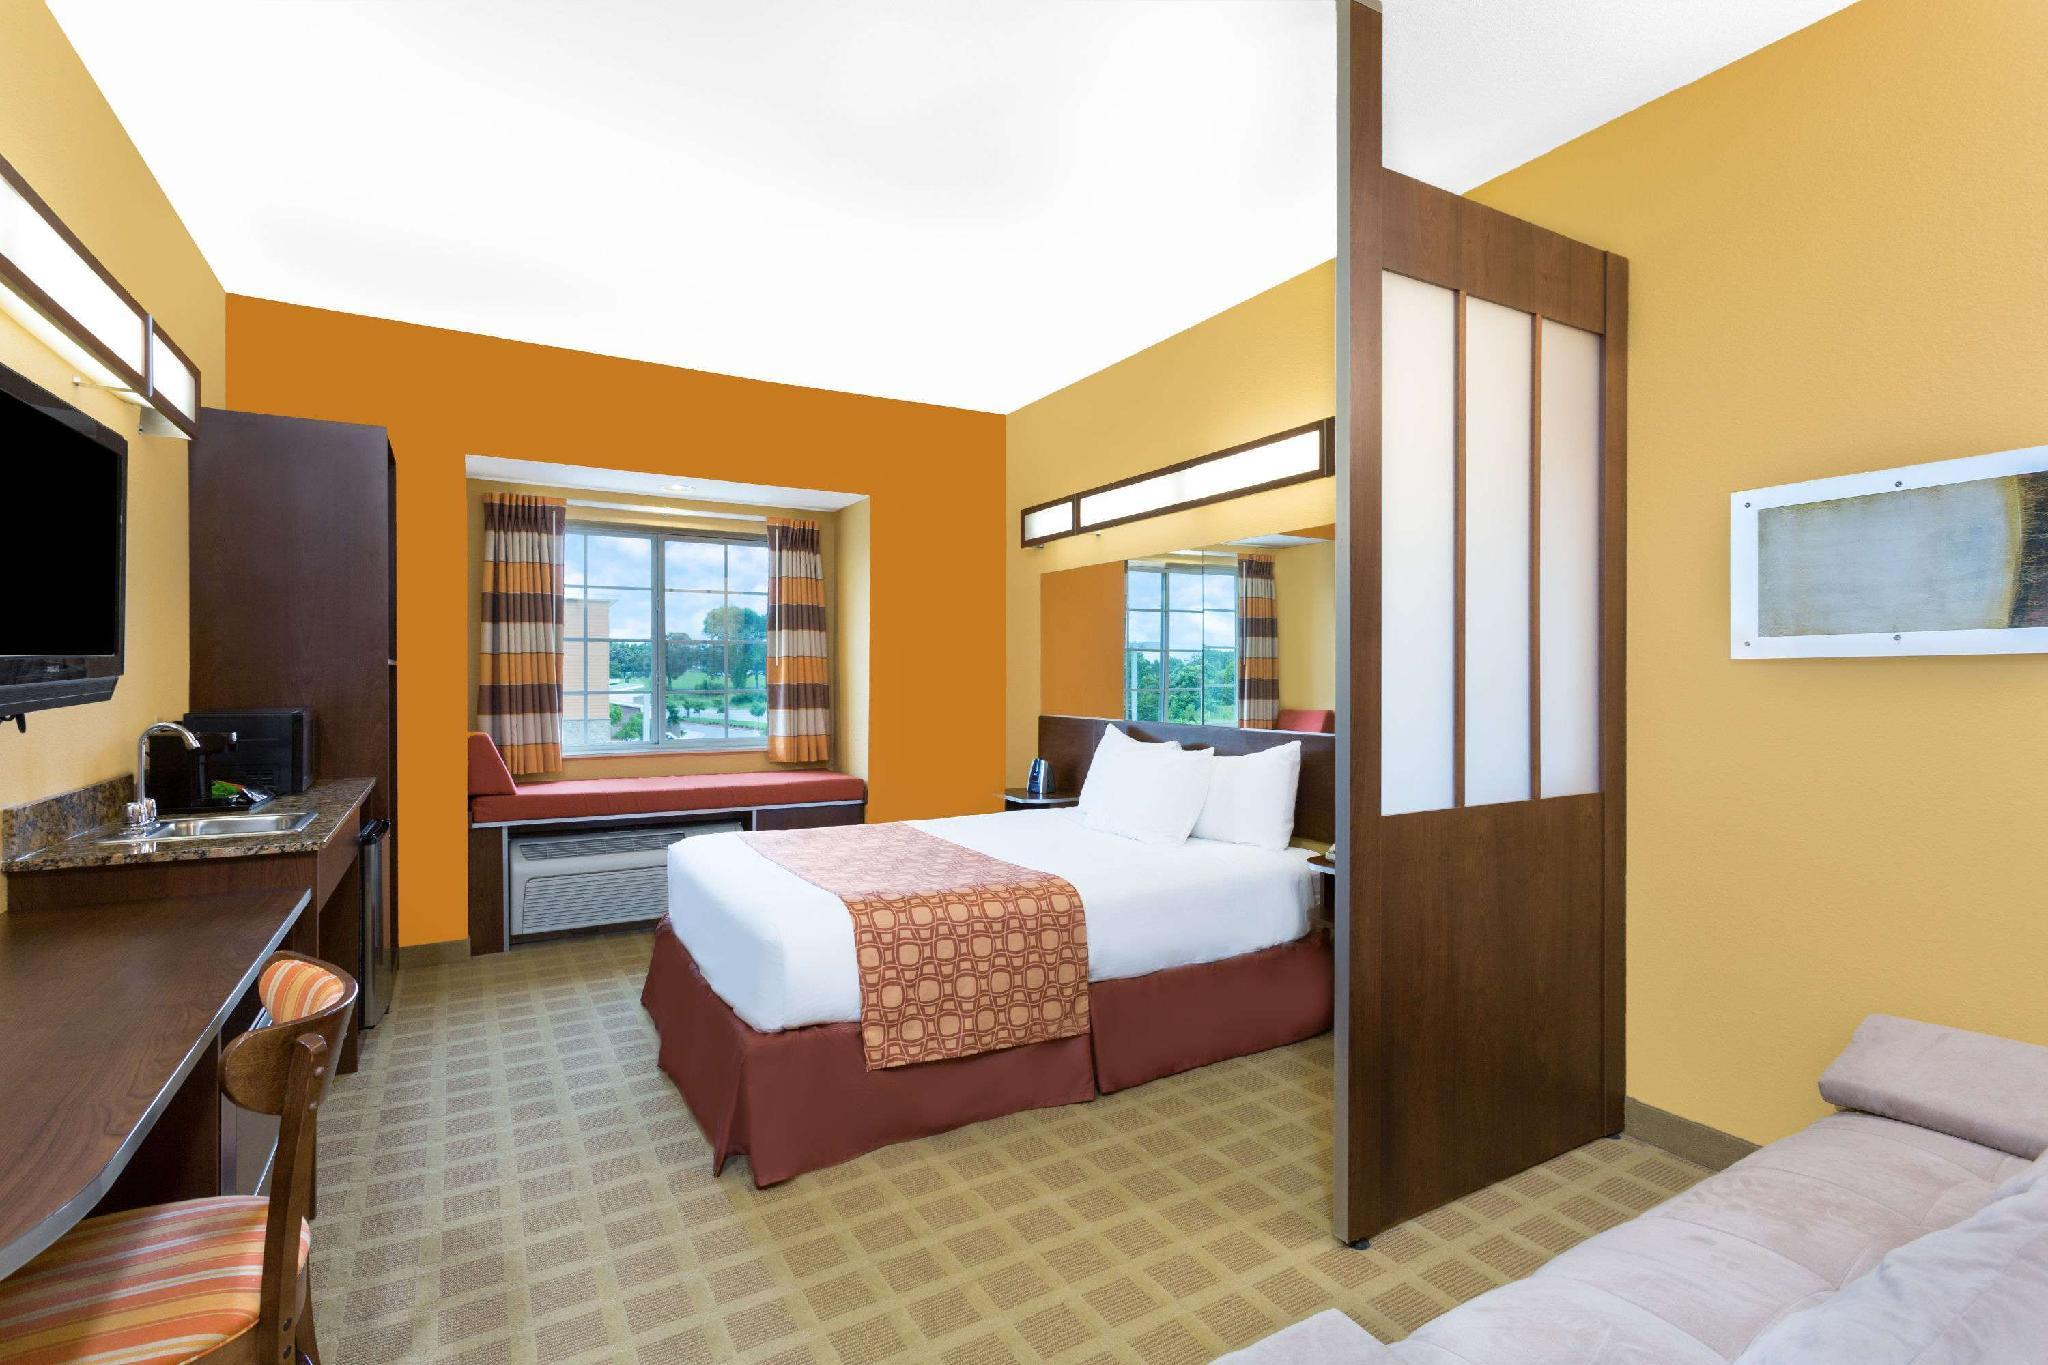 Microtel Inn Suites By Wyndham Greenville University Med Greenville Nc United States Photos Room Rates Promotions